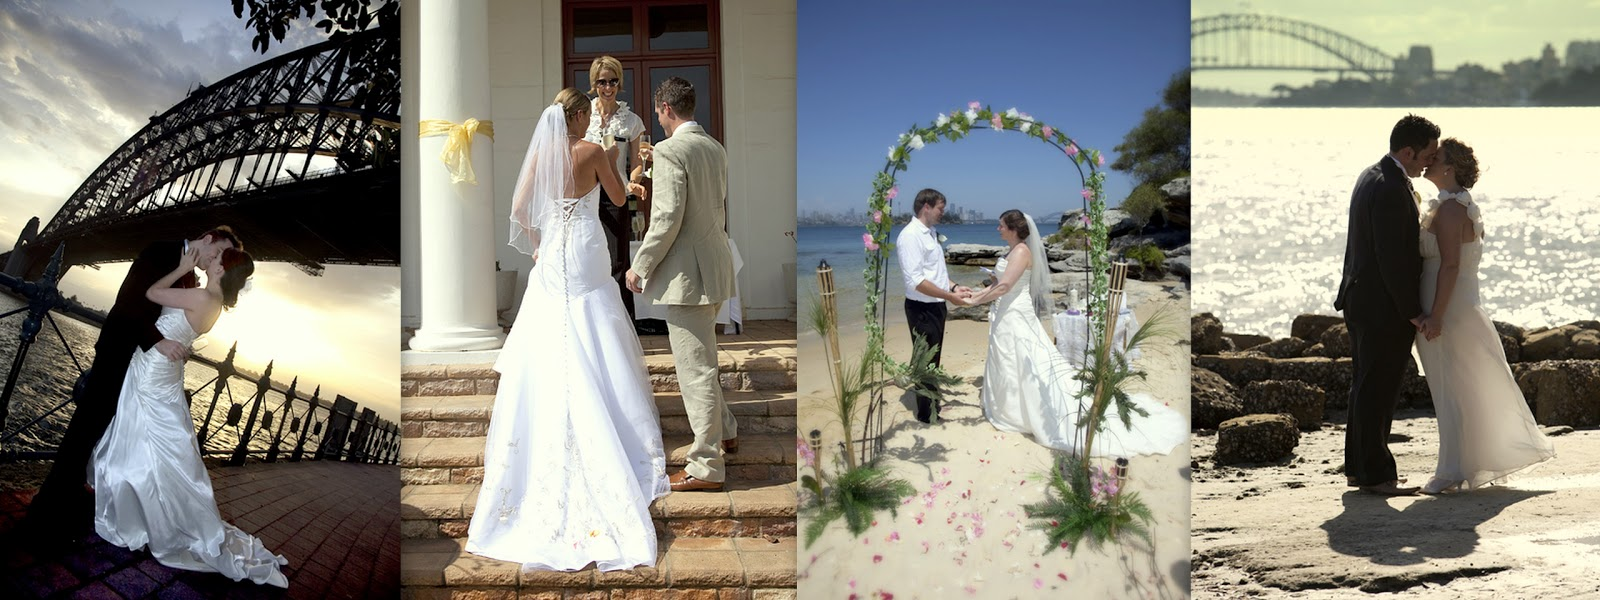 Wedding Planner Sydney: Just Get Married! Sydney Weddings-Wedding Planning